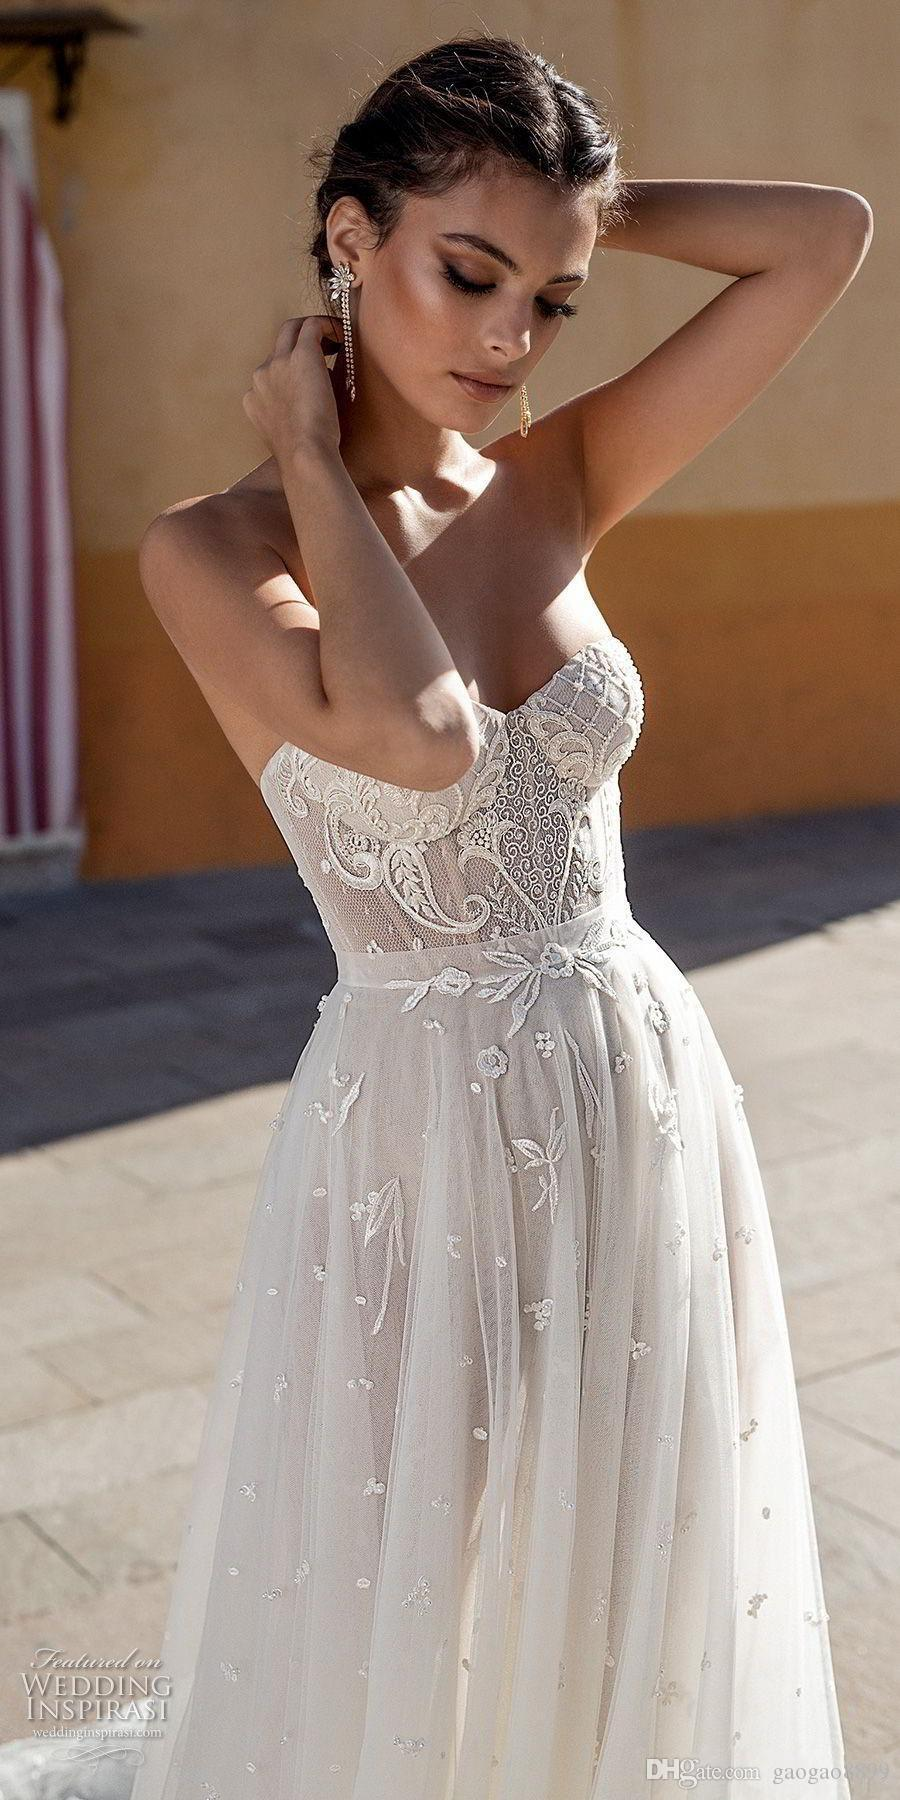 Gali Karten 2019 New Summer Lace Wedding Dresses Bridal Gowns A Line Sweetheart Backless Appliques Pearls Fitted Long